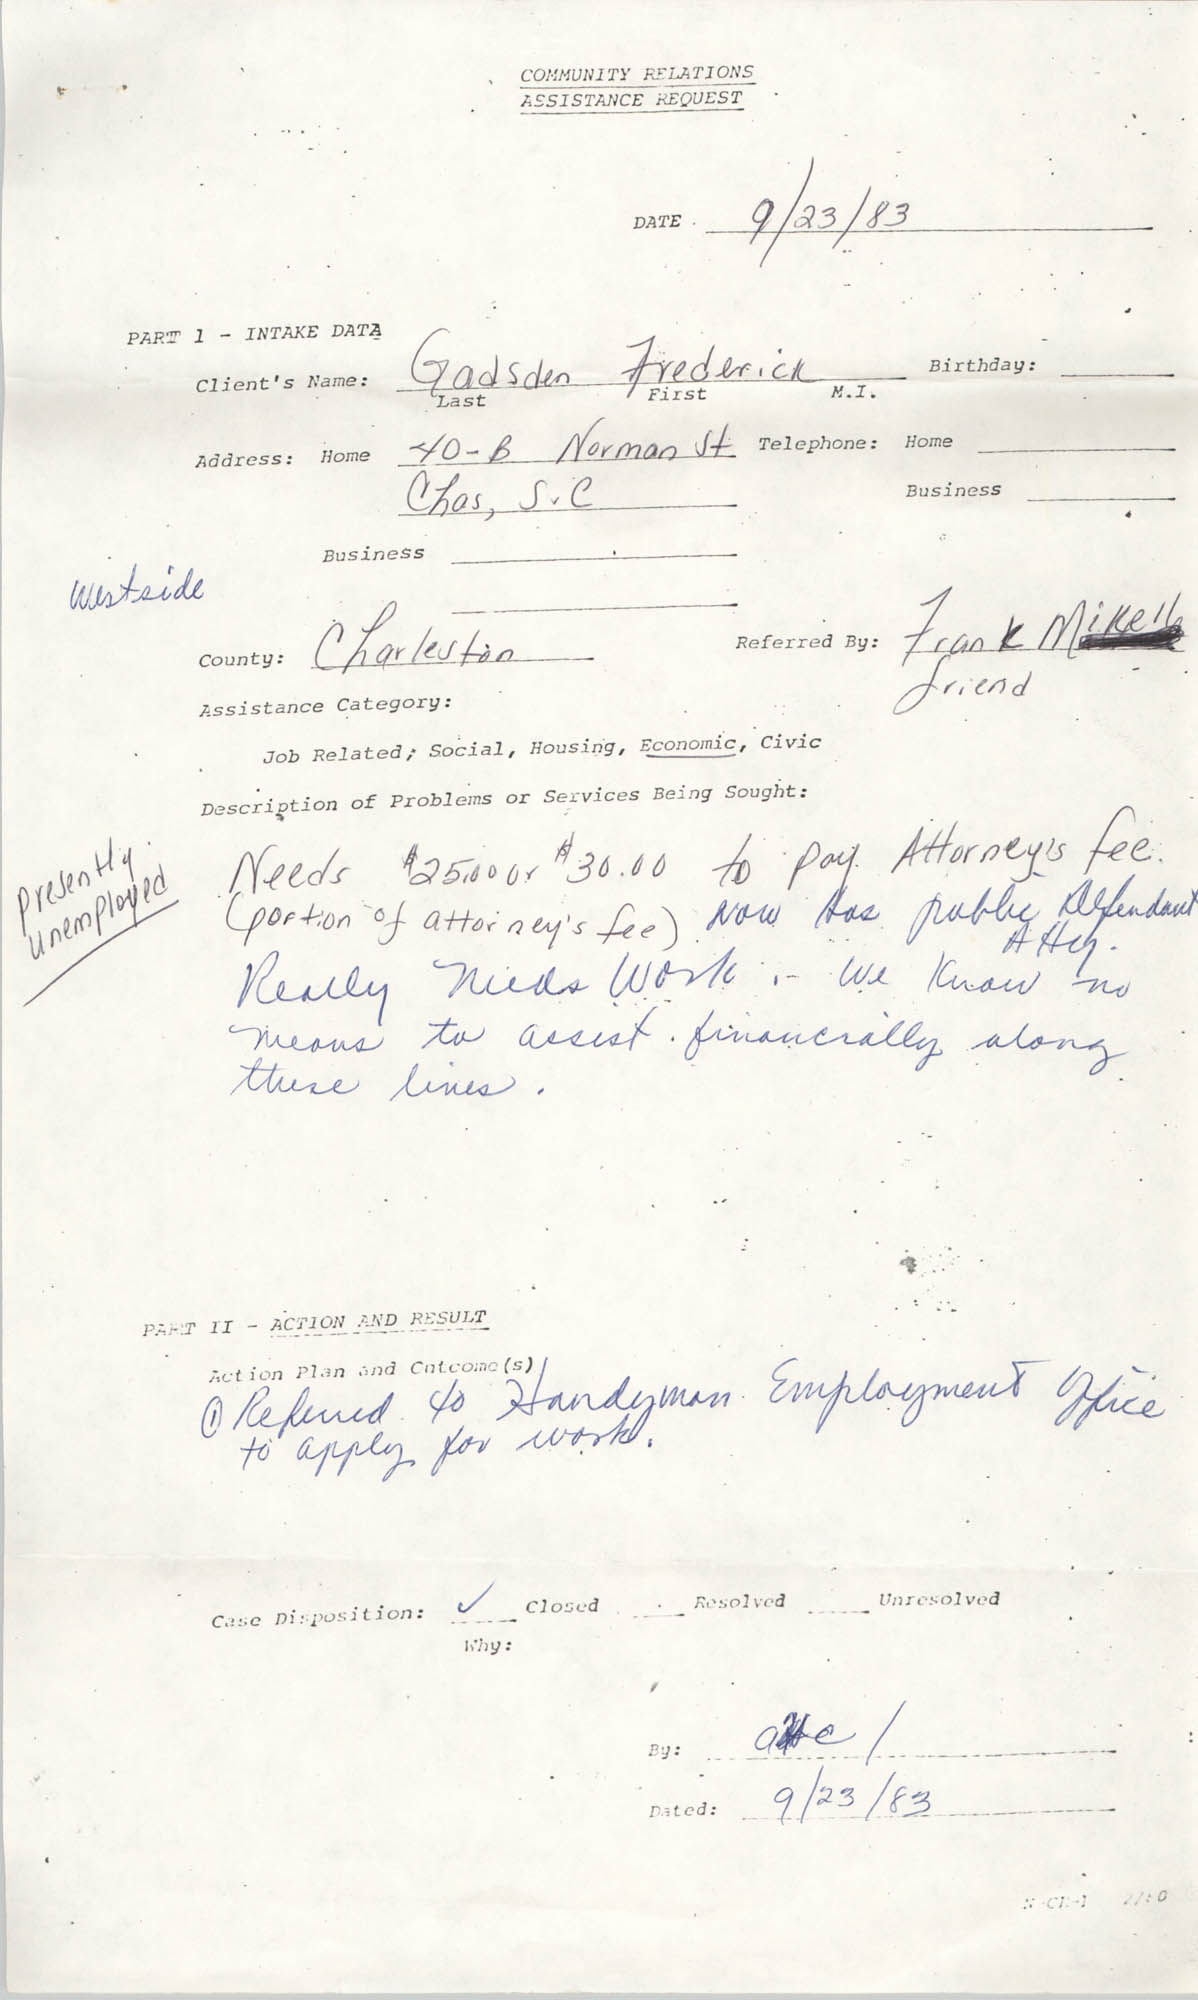 Community Relations Assistance Request, September 23, 1983